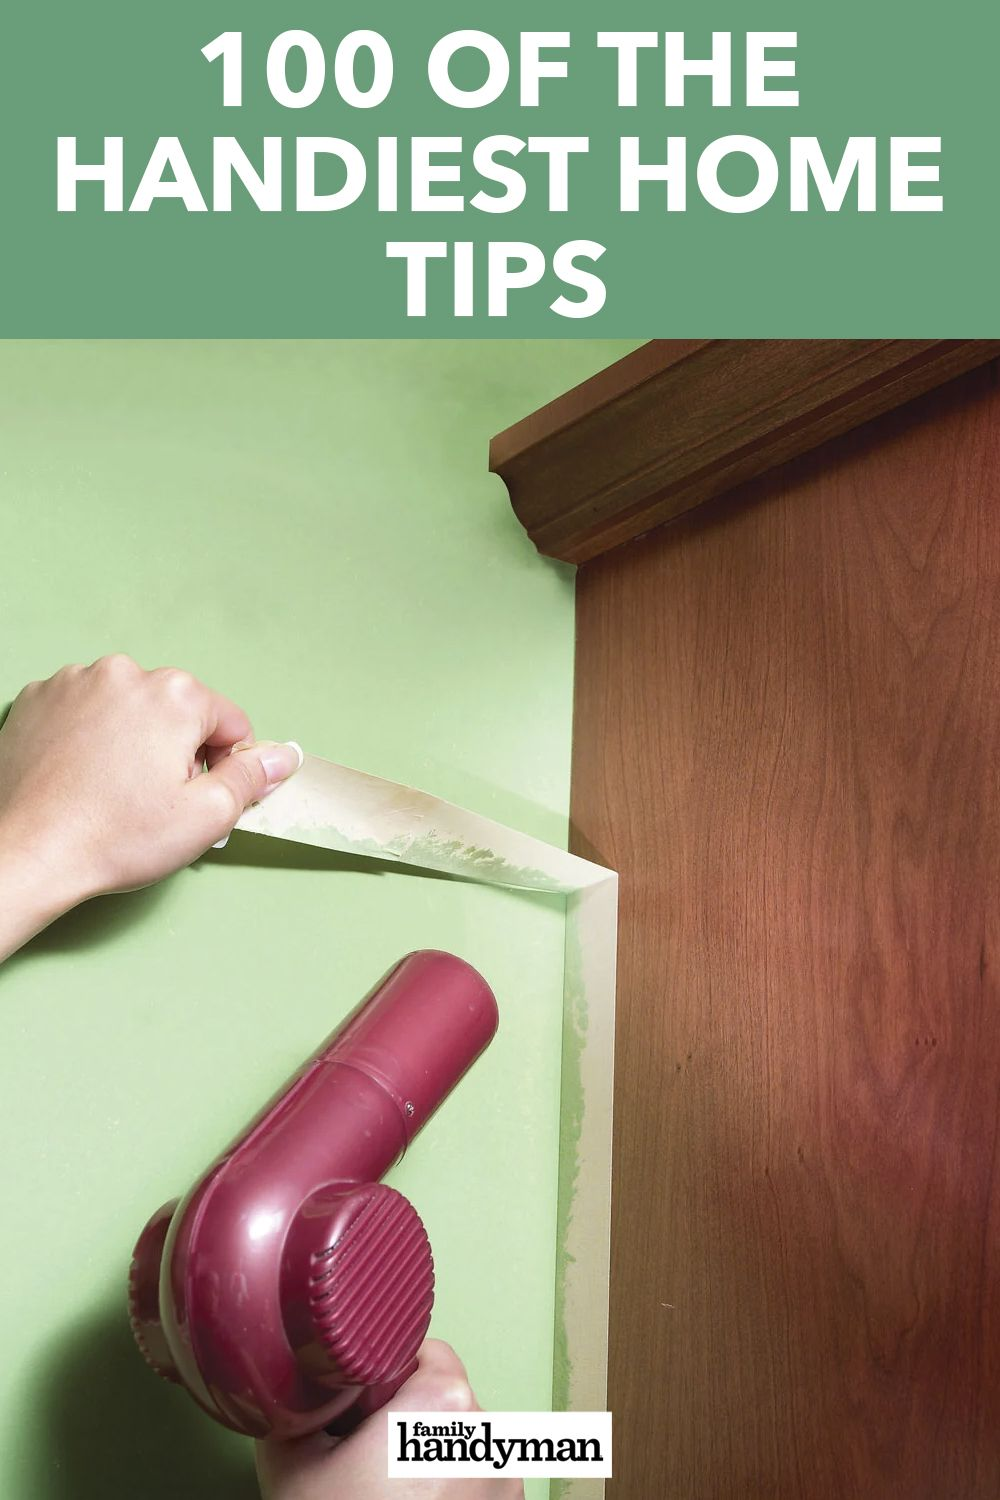 100 of the Handiest Home Tips